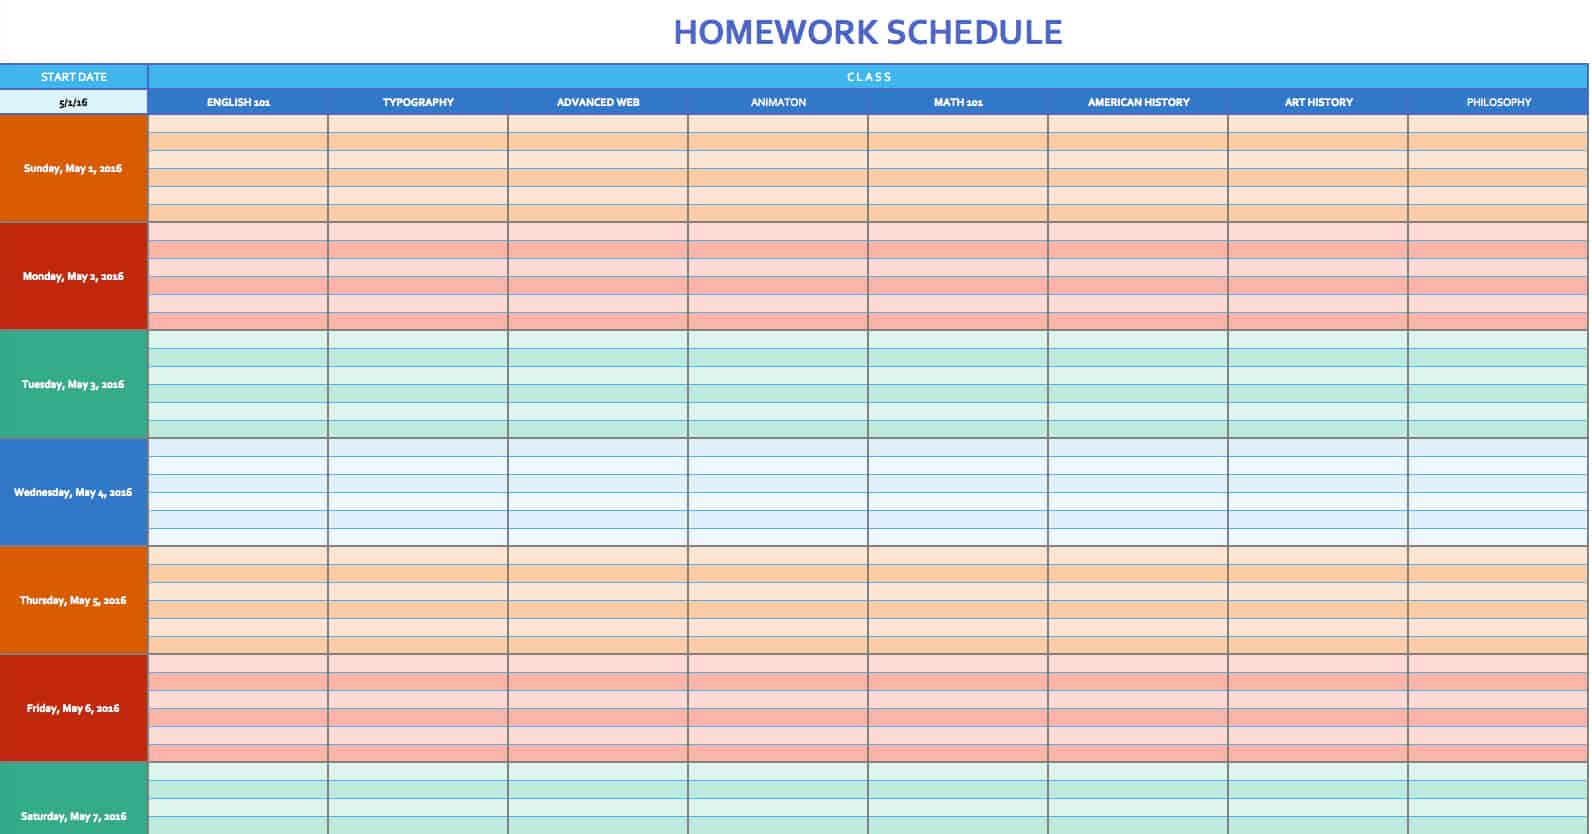 Free weekly schedule templates for excel smartsheet homework schedule template maxwellsz